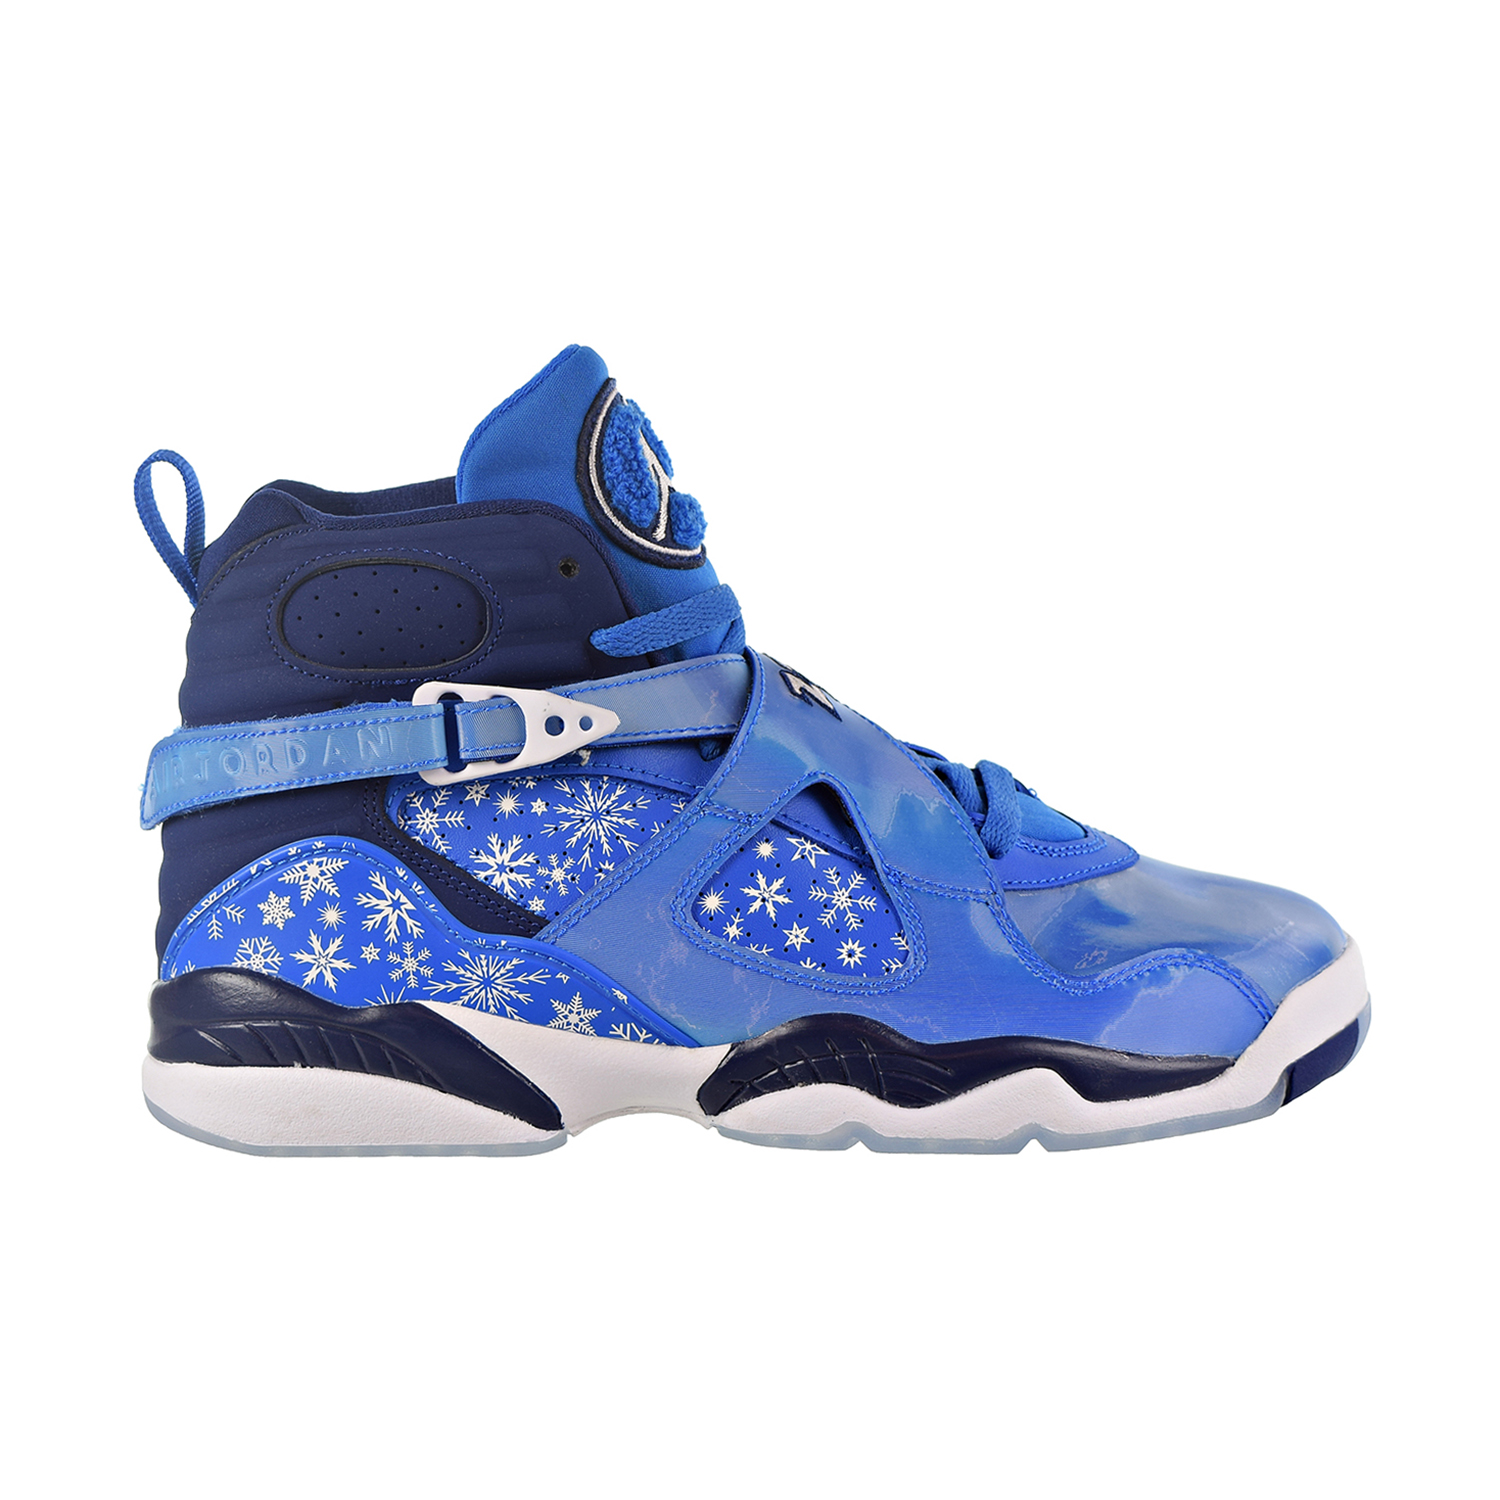 best sneakers 452ff 3326e Details about Nike Air Jordan 8 Retro Big Kid's Shoe Cobalt  Blaze/Blue/Void/White 305368-400